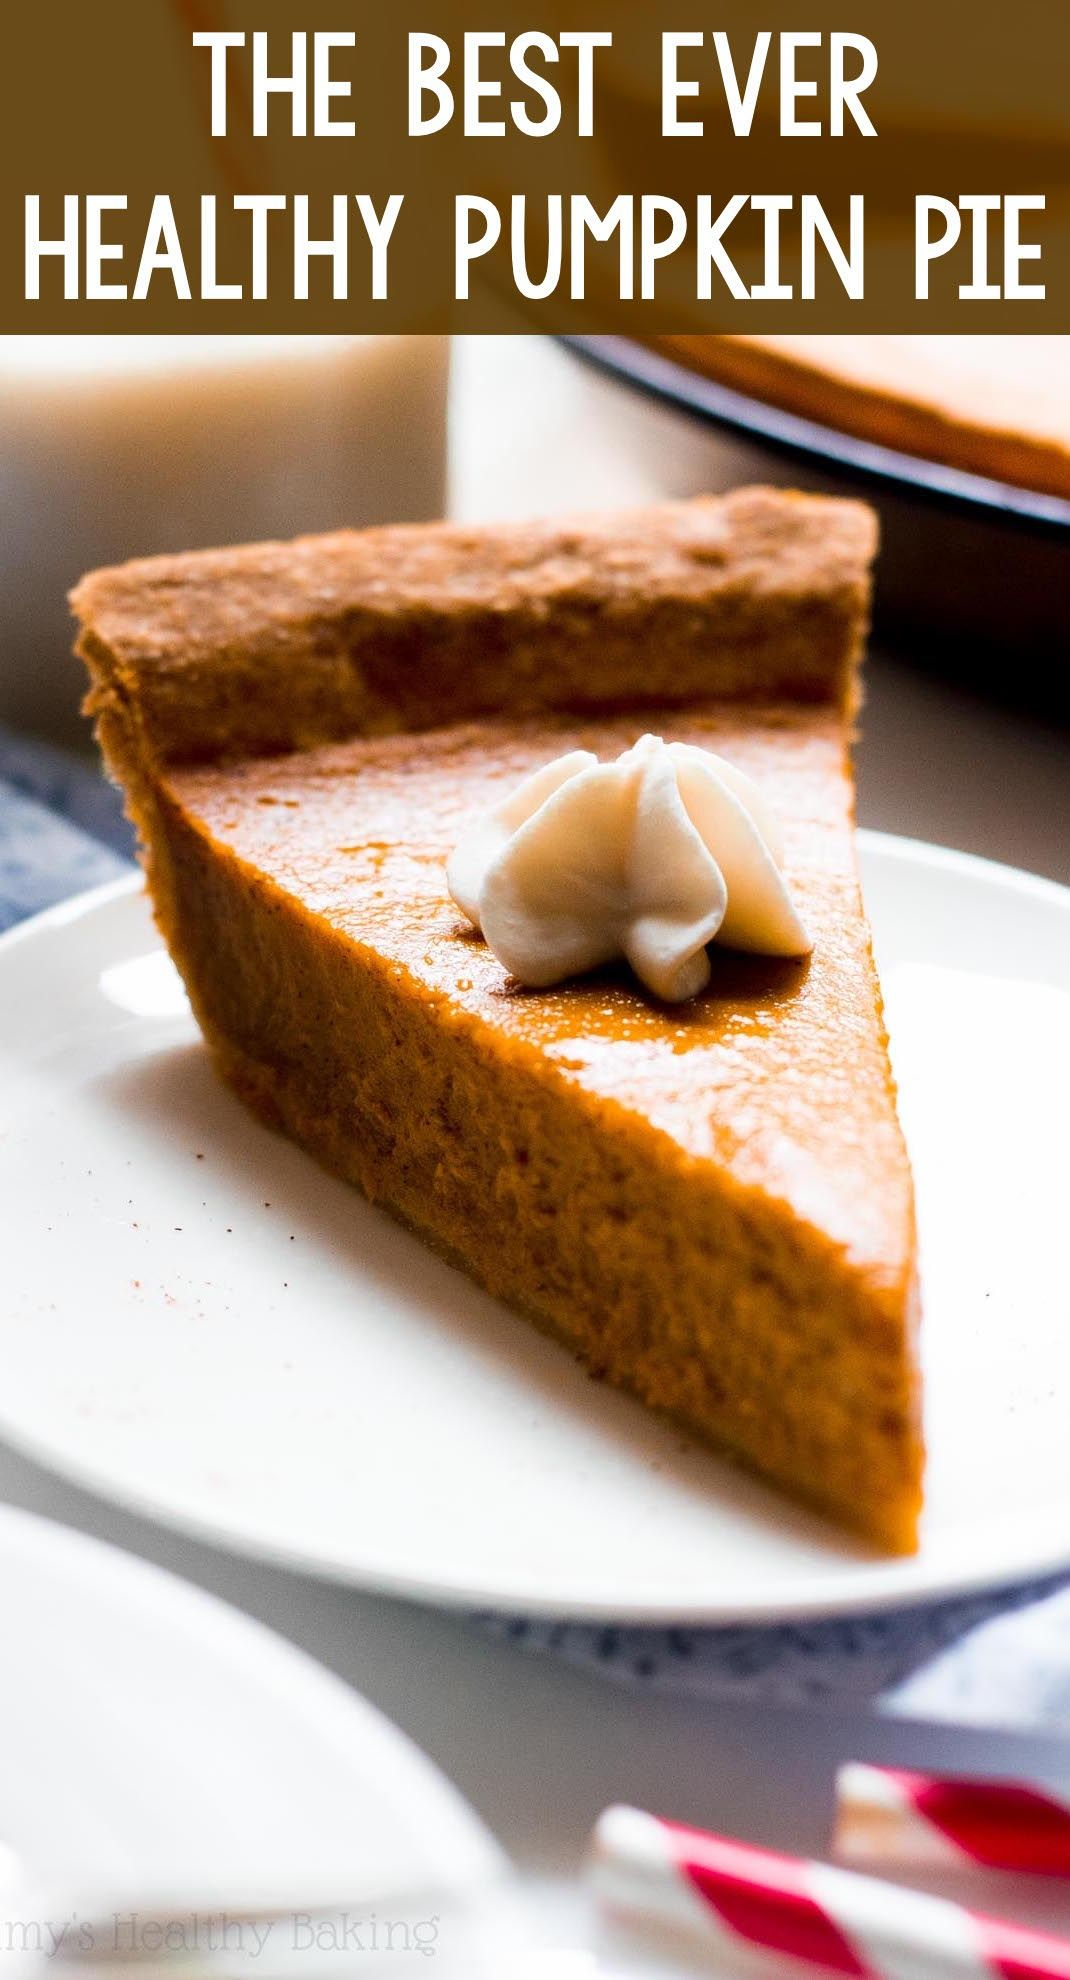 The Ultimate Healthy Pumpkin Pie This Skinny Pie Doesn T Taste Healthy At All You Ll Ne Low Carb Pumpkin Pie Healthy Pumpkin Pie Recipe Healthy Pumpkin Pies